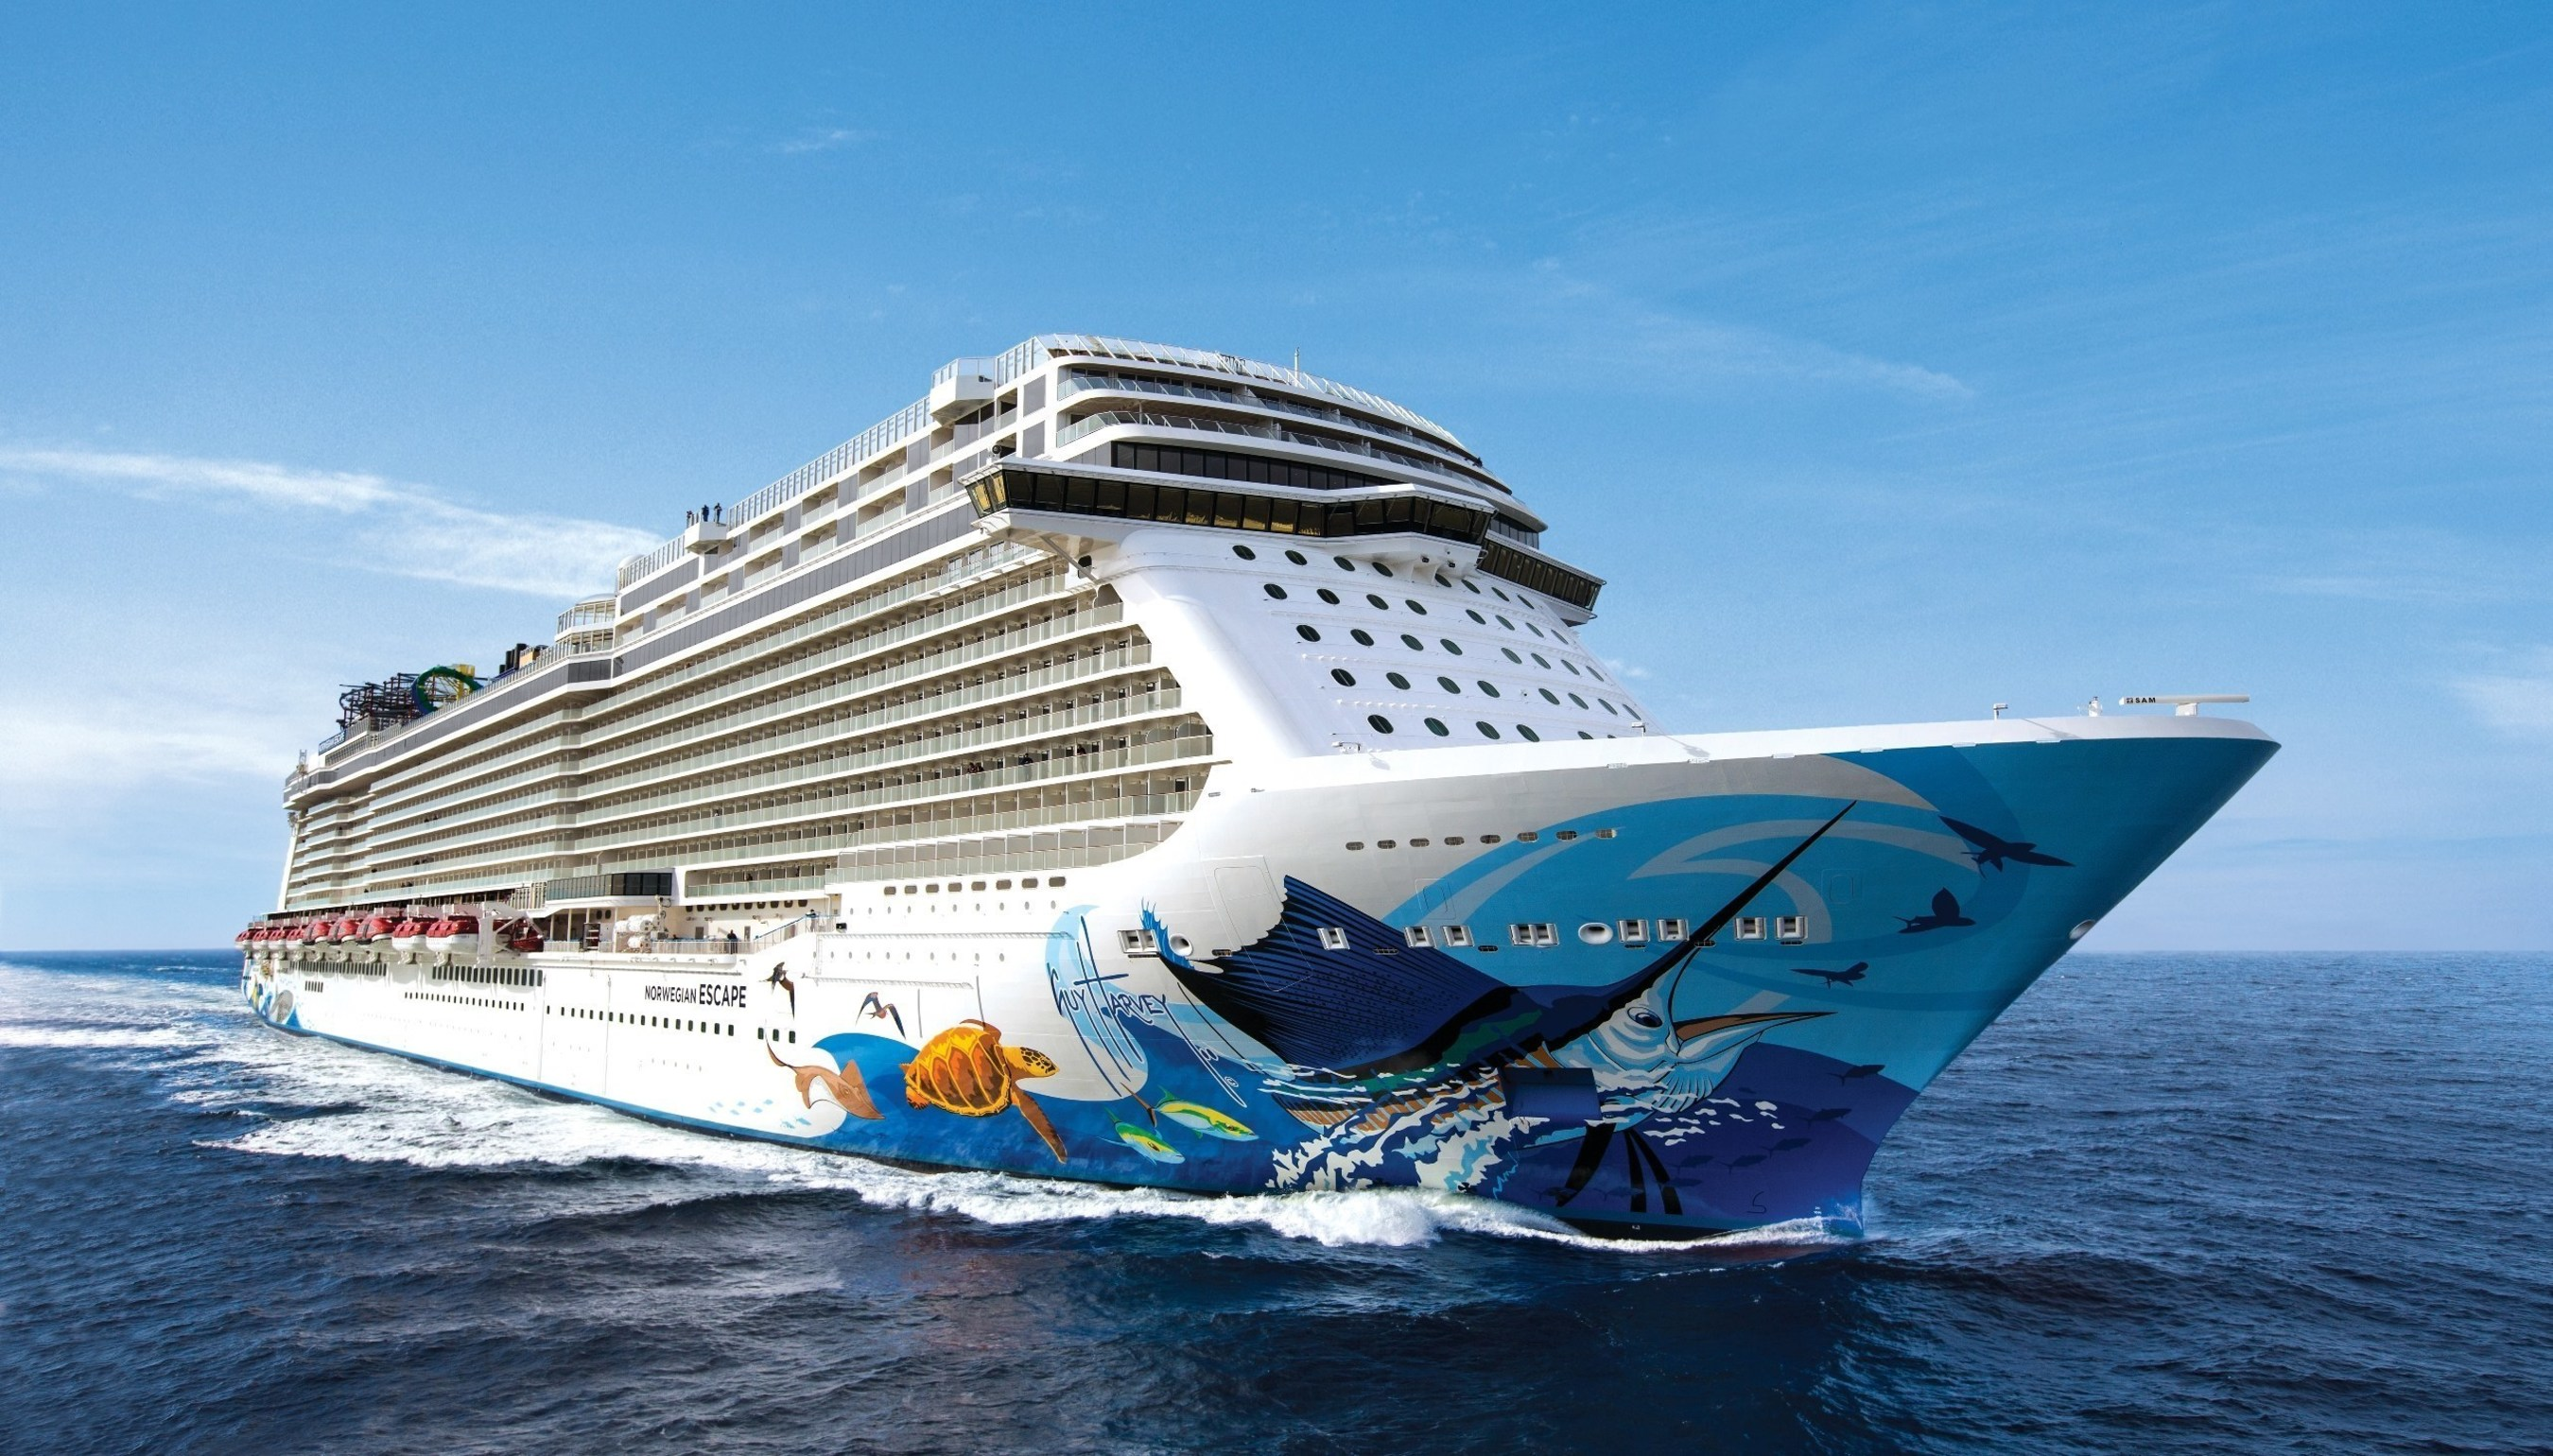 Thanks to EMC, Norwegian Escape broke the record for social media usage at sea during its recent inaugural voyage.